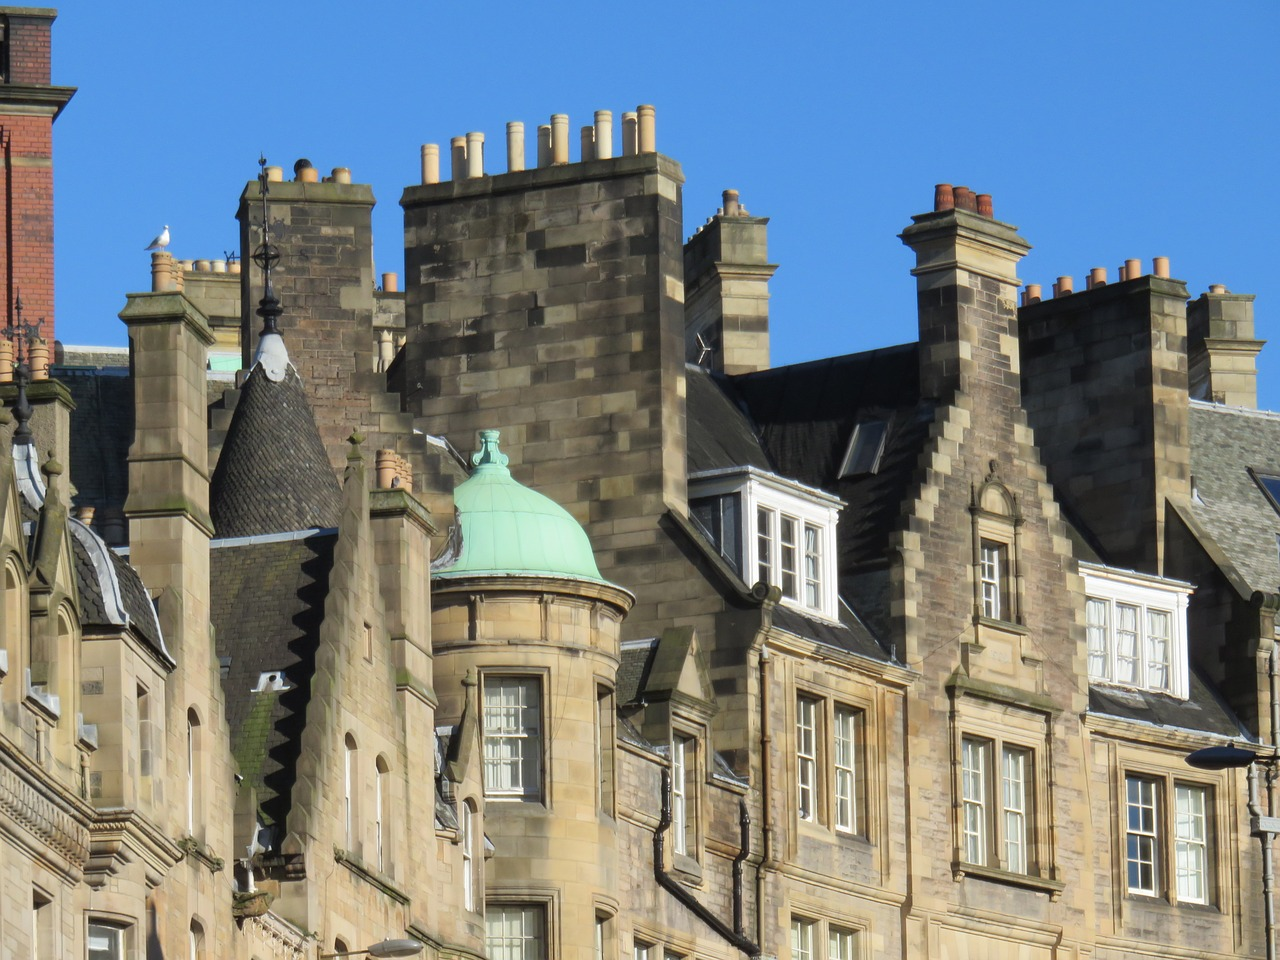 Cercare casa a Edimburgo con Rightmove